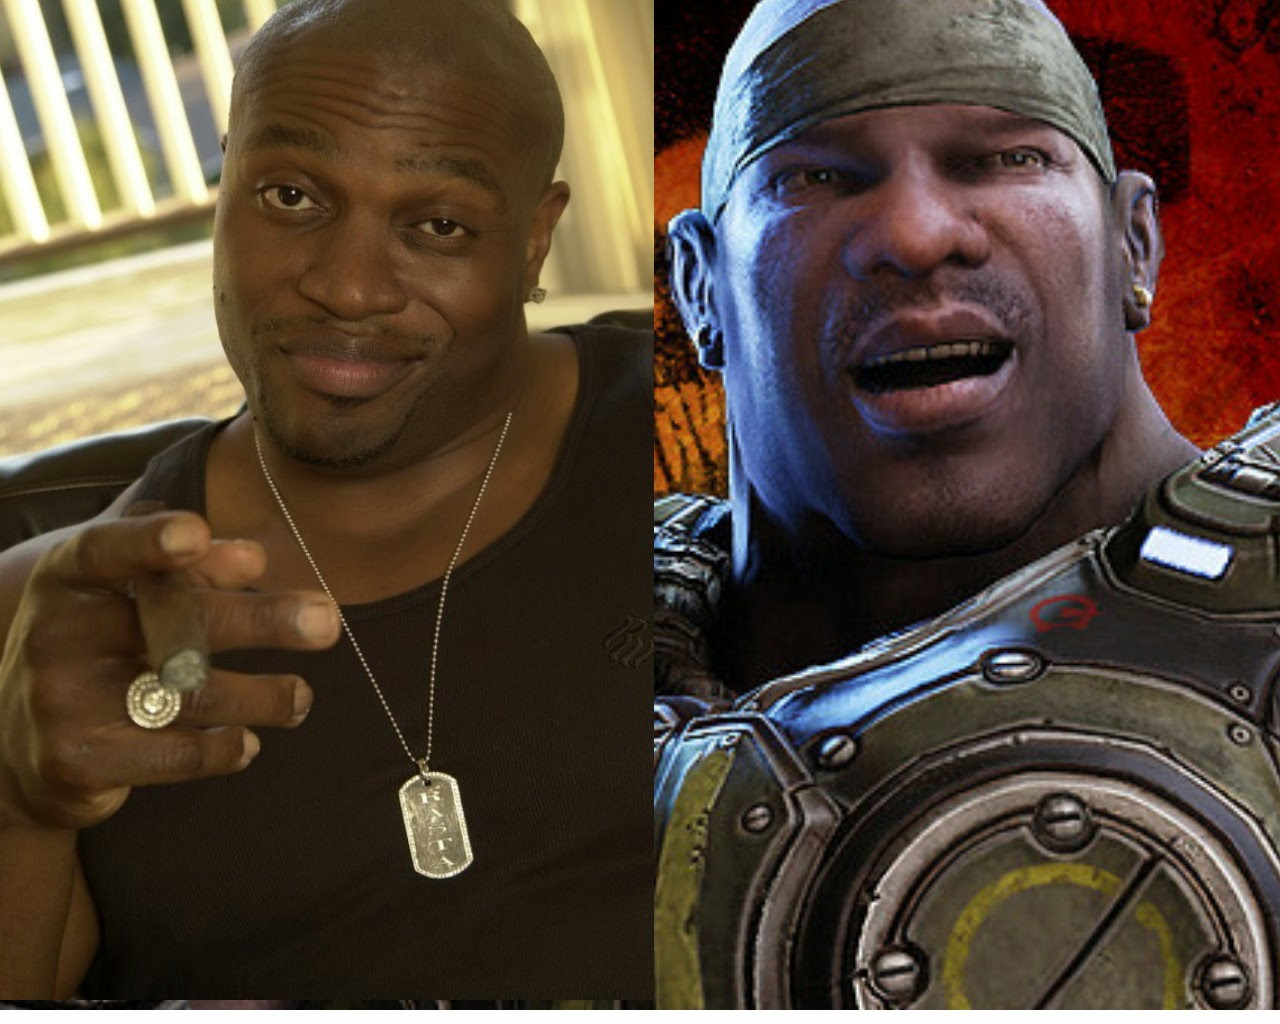 lester speight musclelester speight gears of war, lester speight, lester speight height weight, lester speight net worth, lester speight wife, lester speight prison break, lester speight workout, lester speight wrestling, lester speight instagram, lester speight football highlights, lester speight ma famille d'abord, lester speight muscle, lester speight imdb, lester speight twitter, lester speight steroids, lester speight football career, lester speight terry crews, lester speight 2015, lester speight bench press, lester speight 40 yard dash